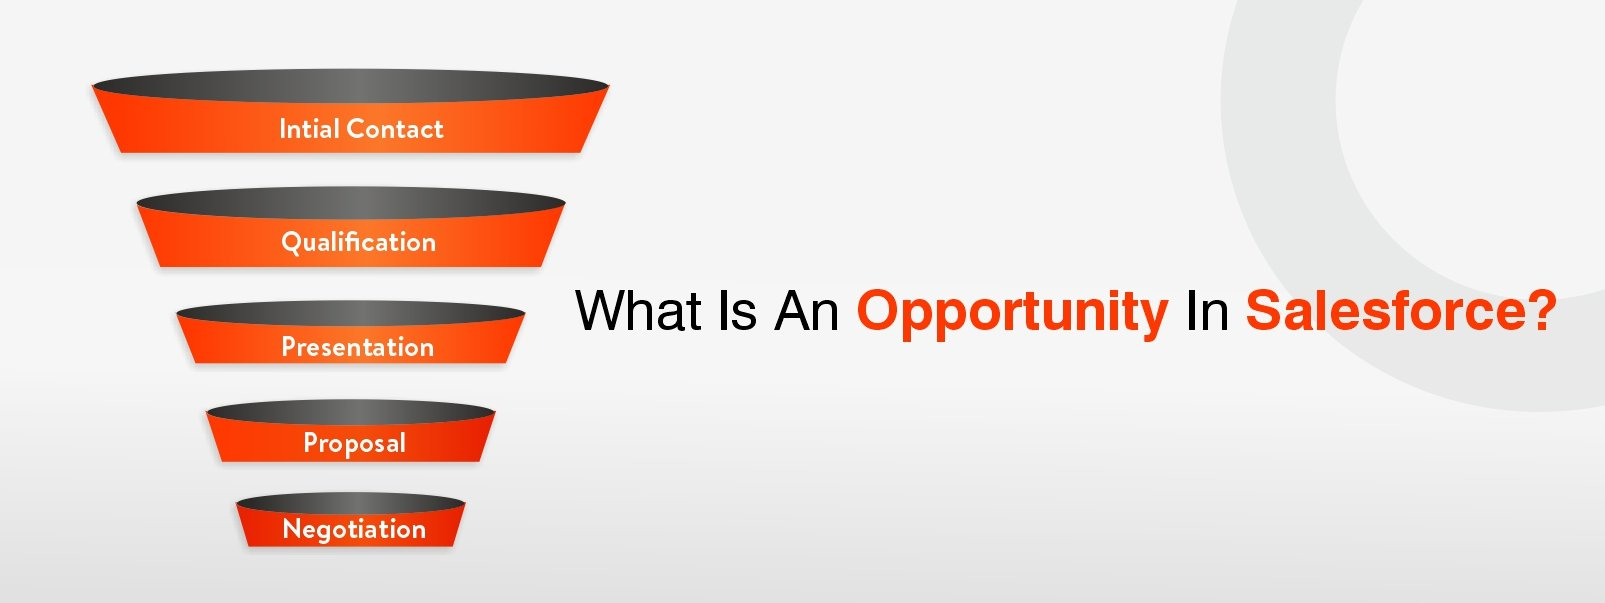 What Is An Opportunity In Salesforce?